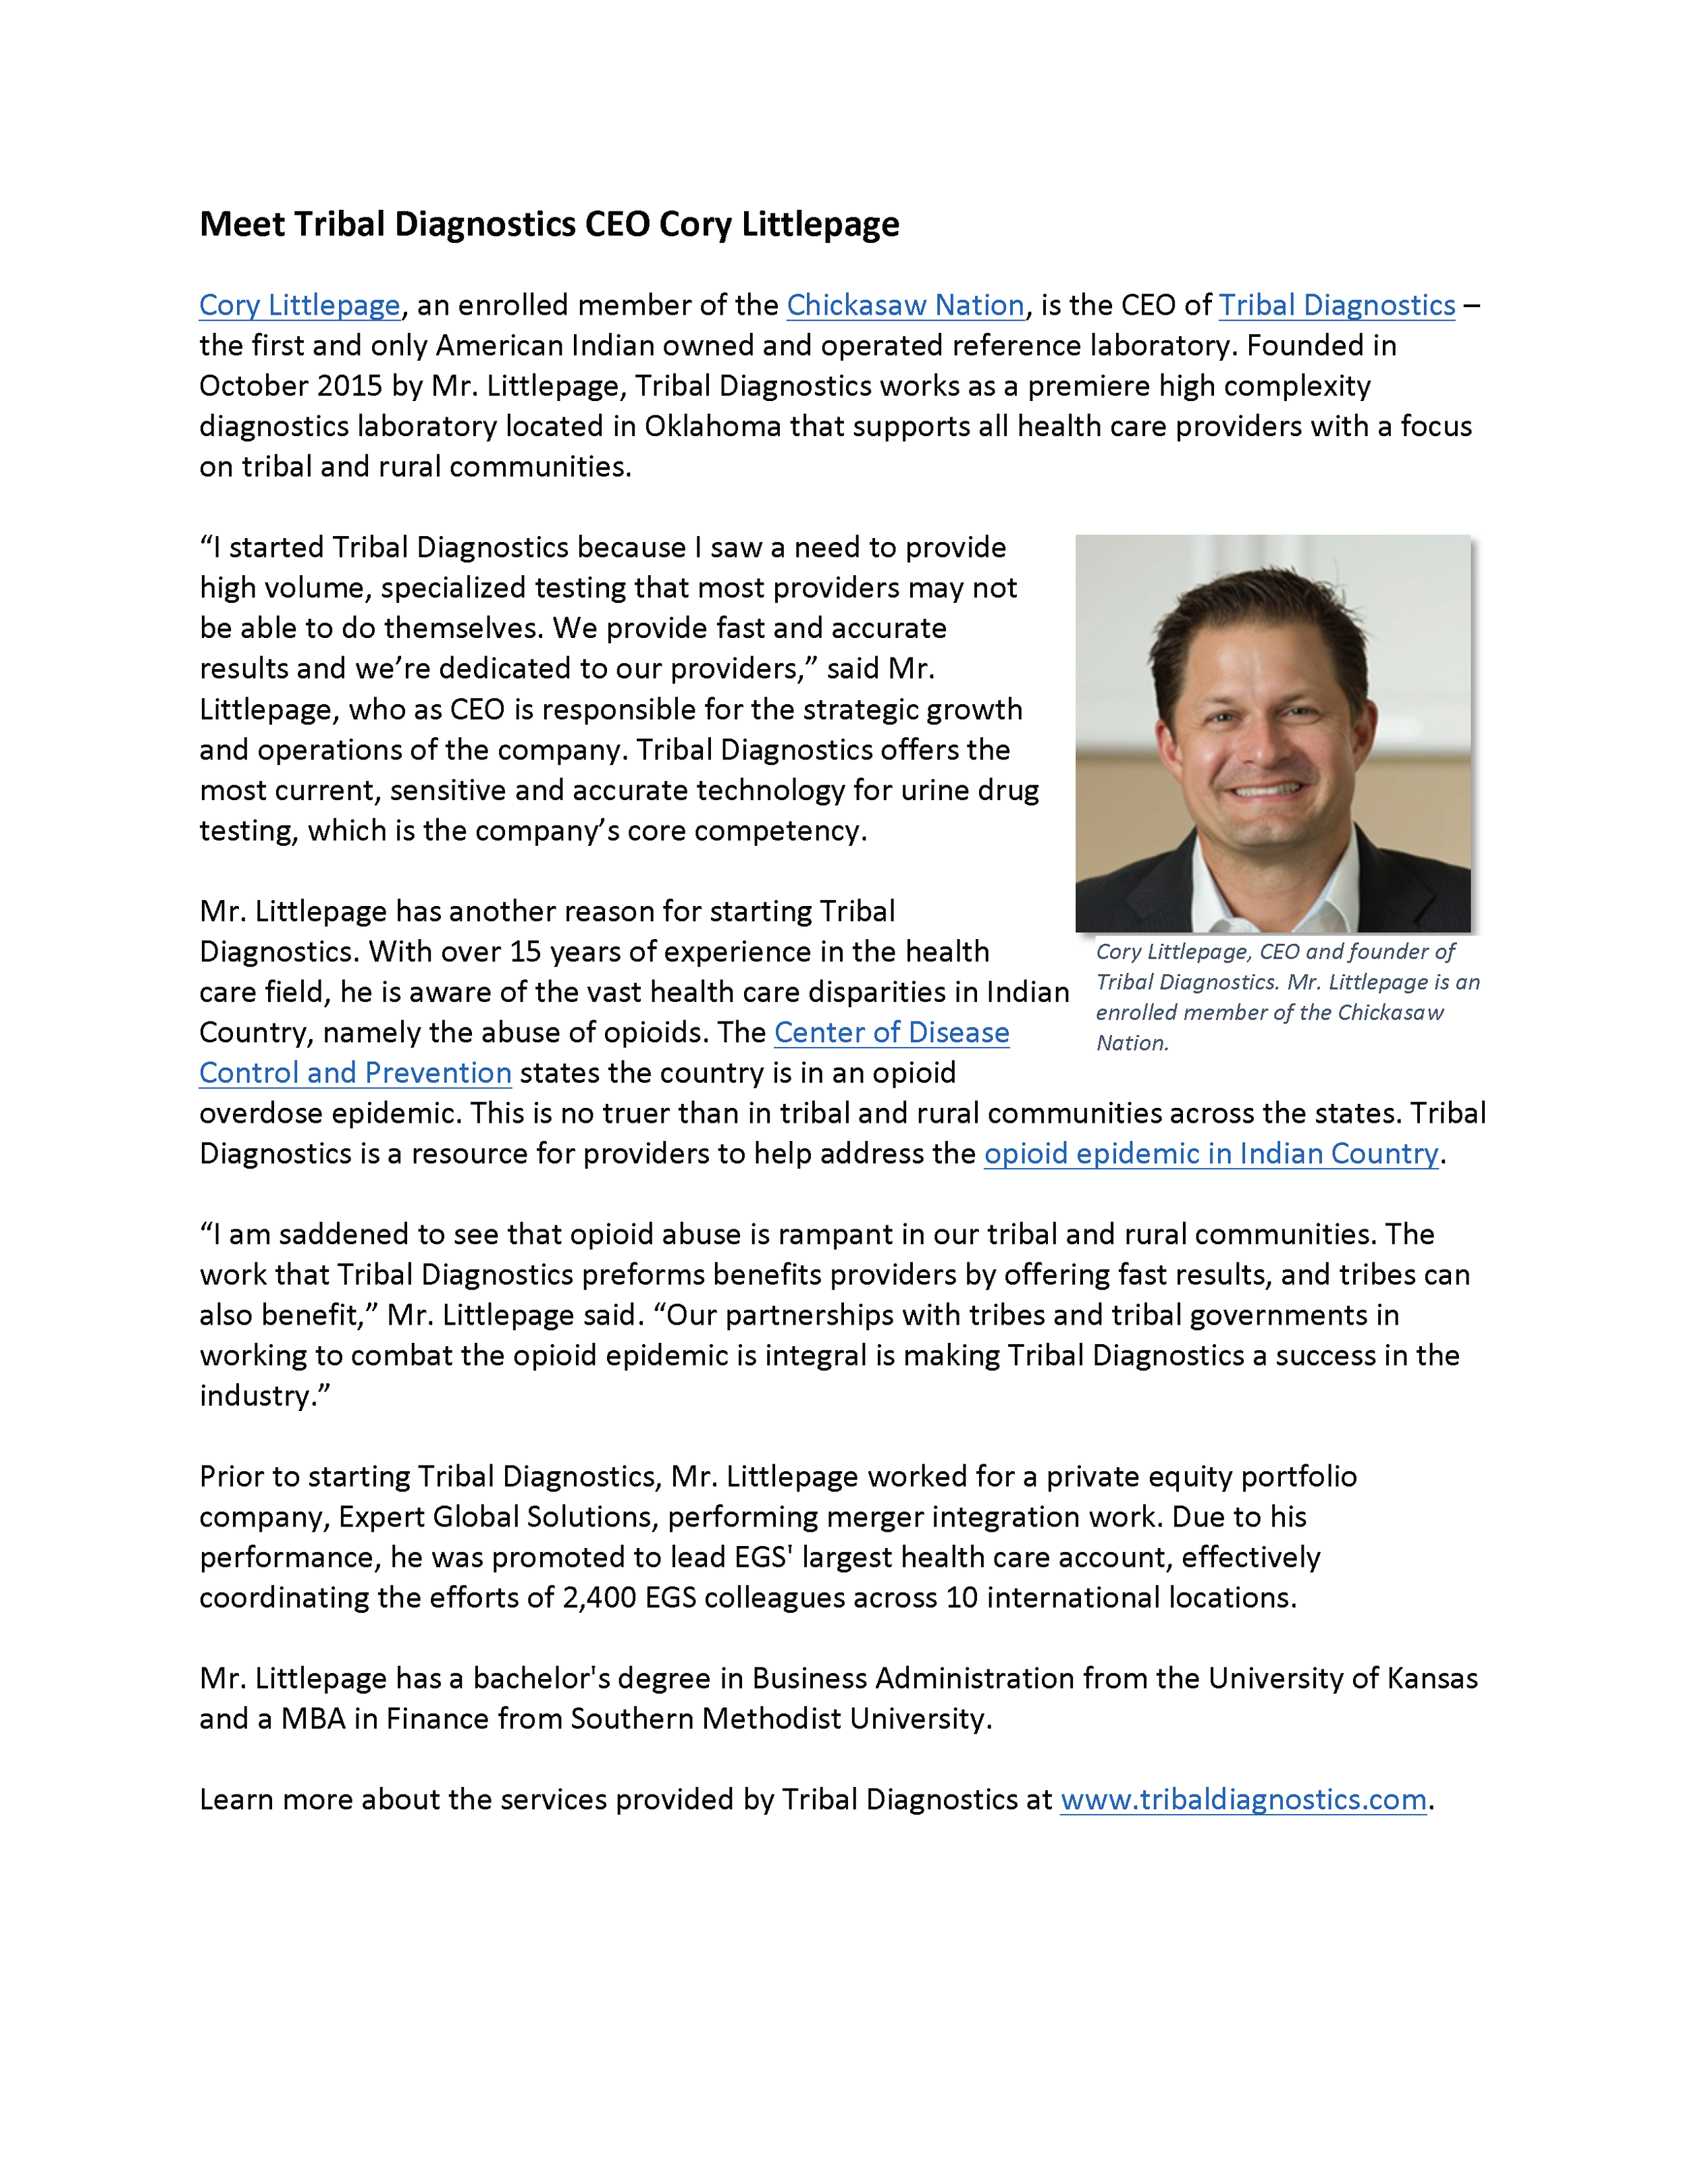 FINAL_Blog-CEO-Intro_06-19-17.png